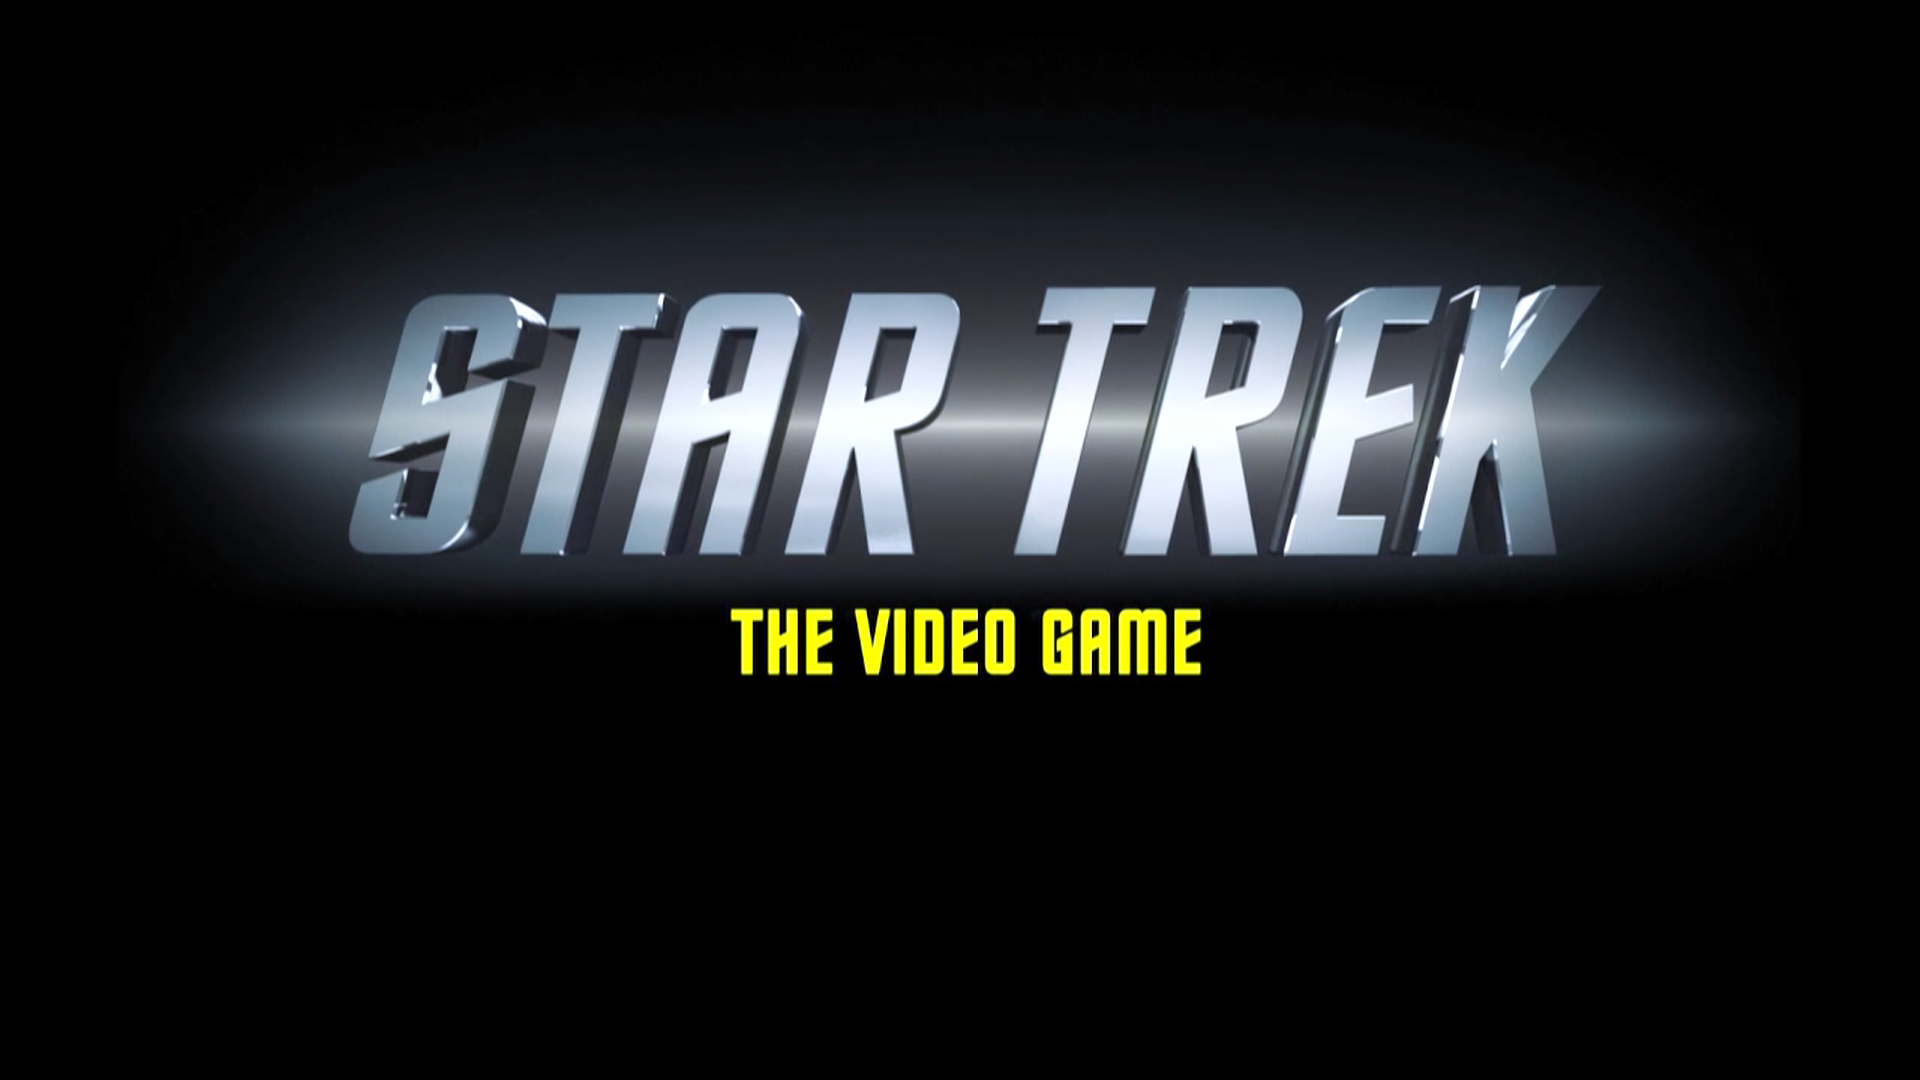 Star Trek - the Video Game